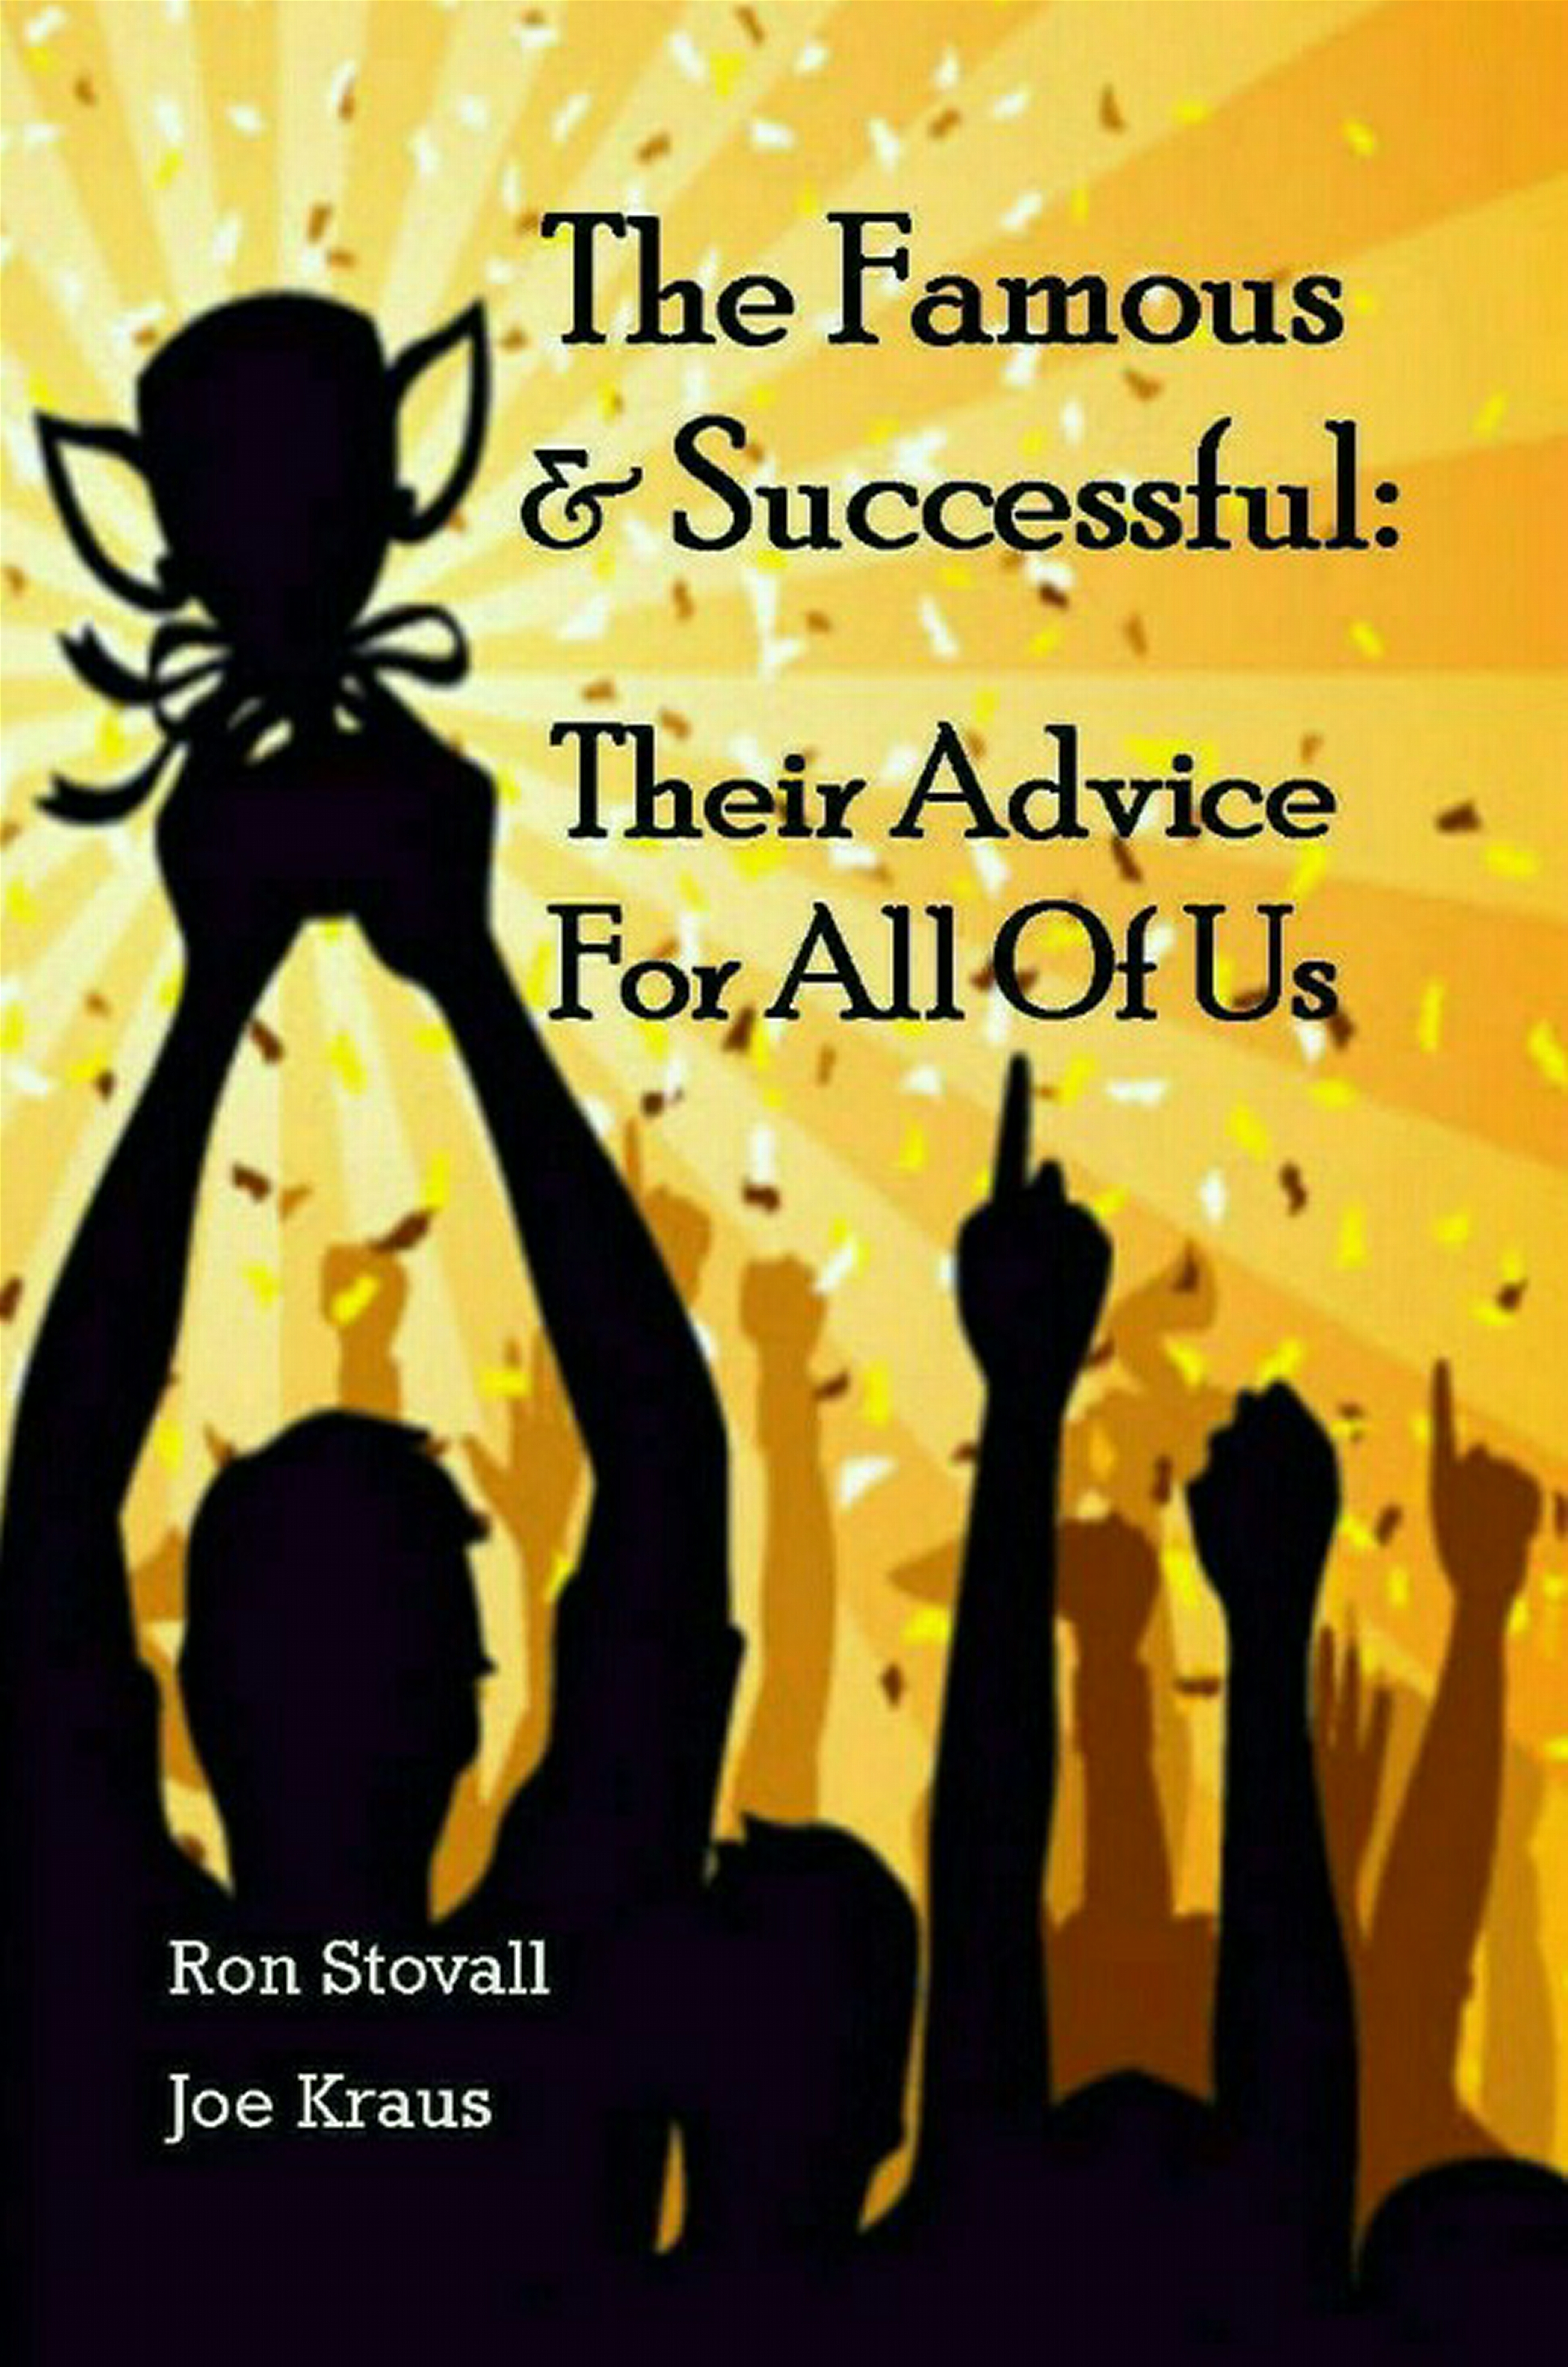 The Famous & Successful: Their Advice For All Of Us By Ron Stovall & Joe Kraus